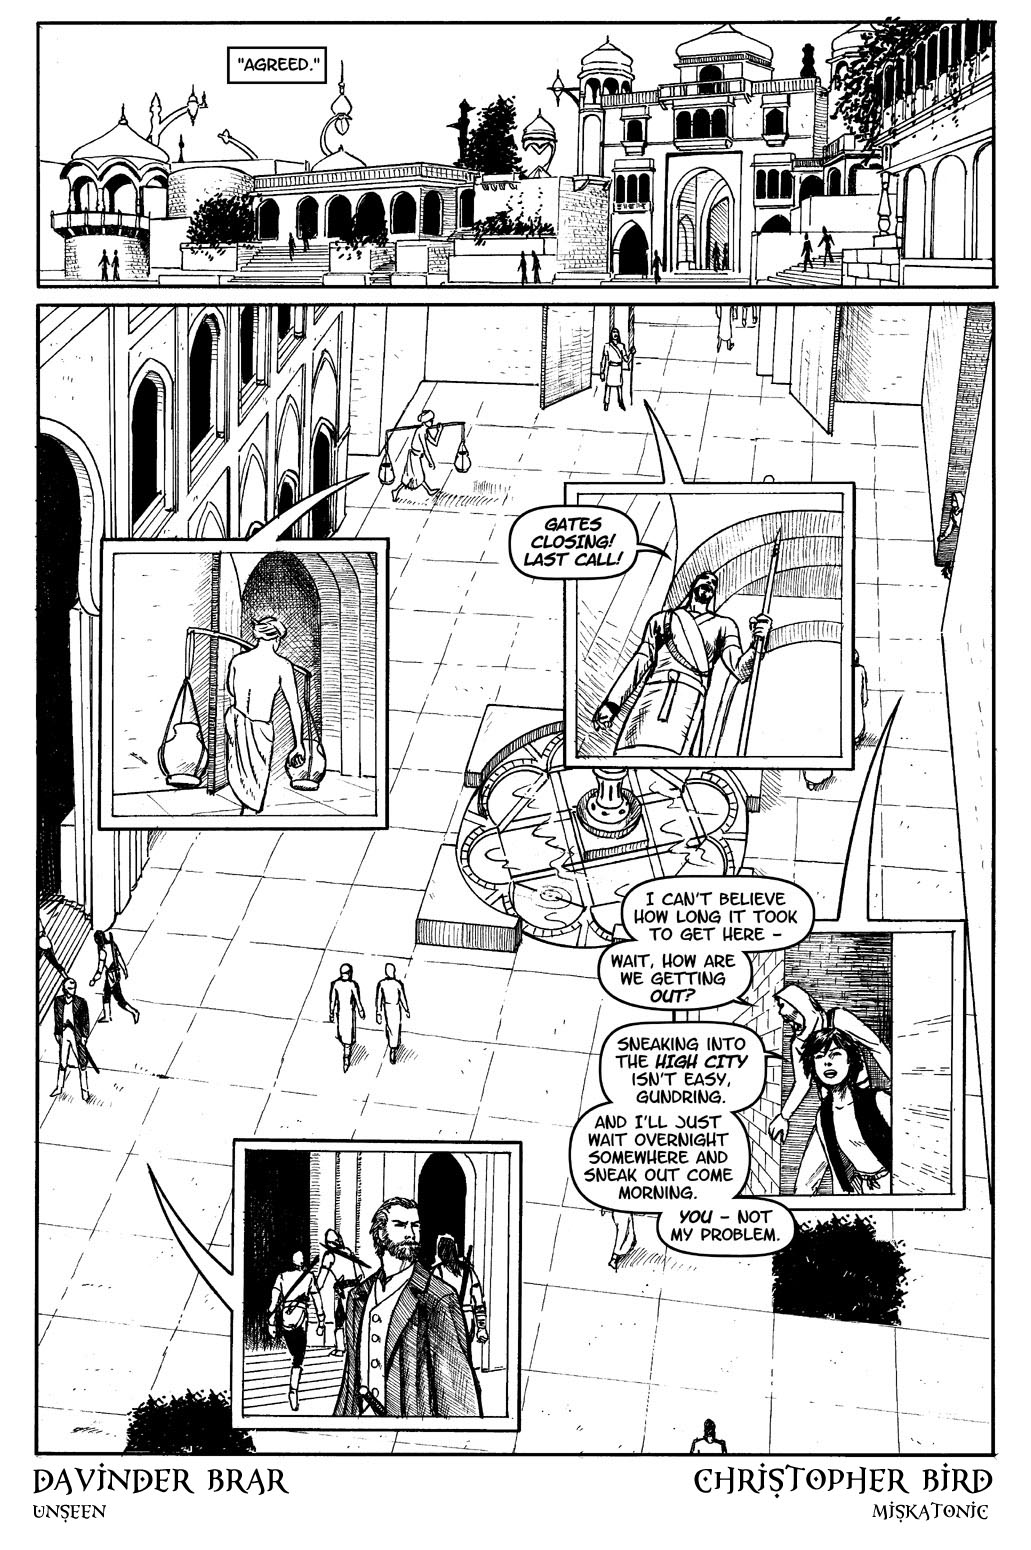 Book 3, page 19